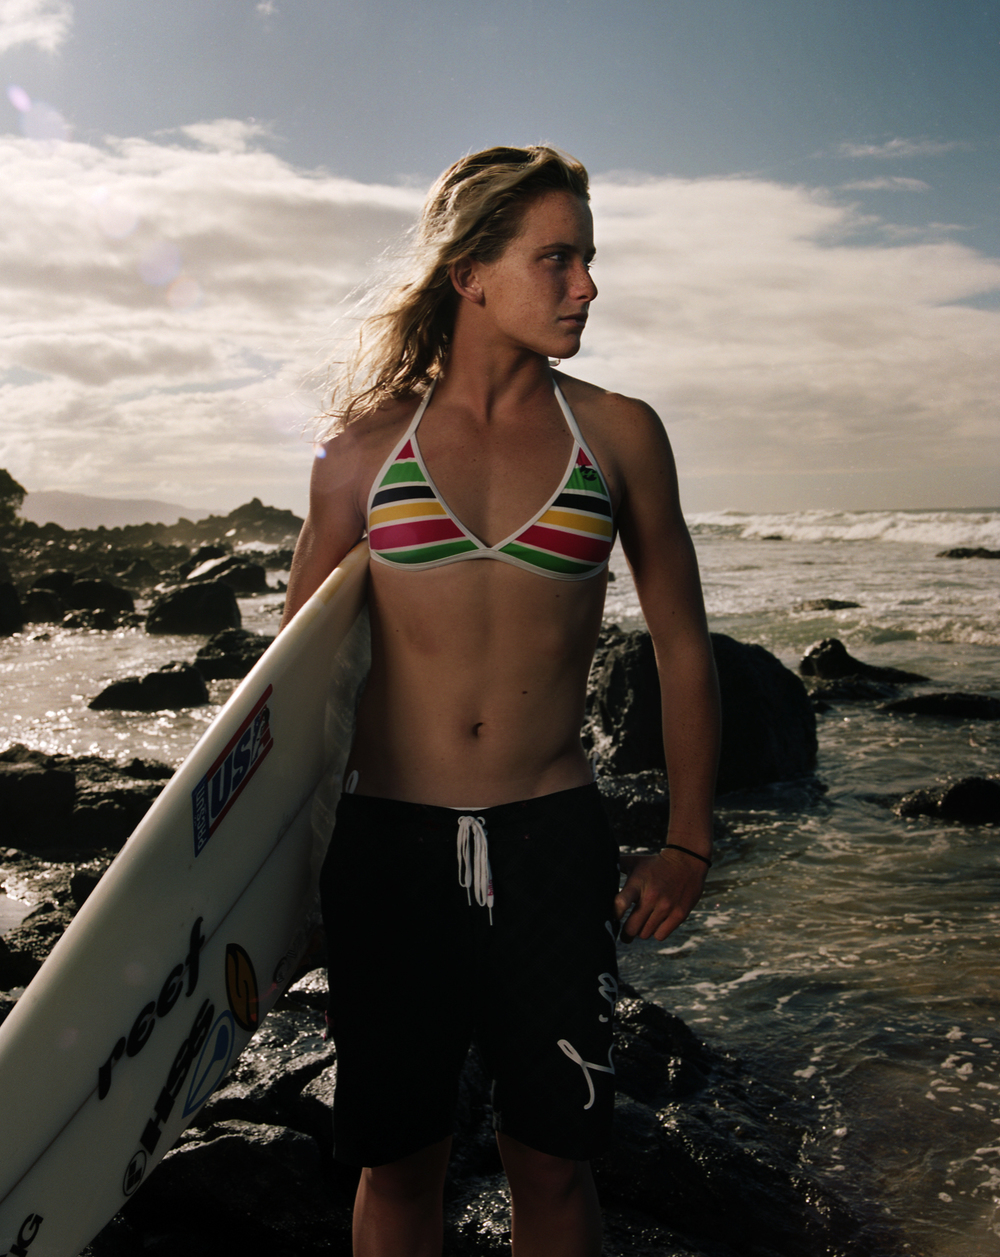 Courtney Conlogue - North Shore Oahu, HI